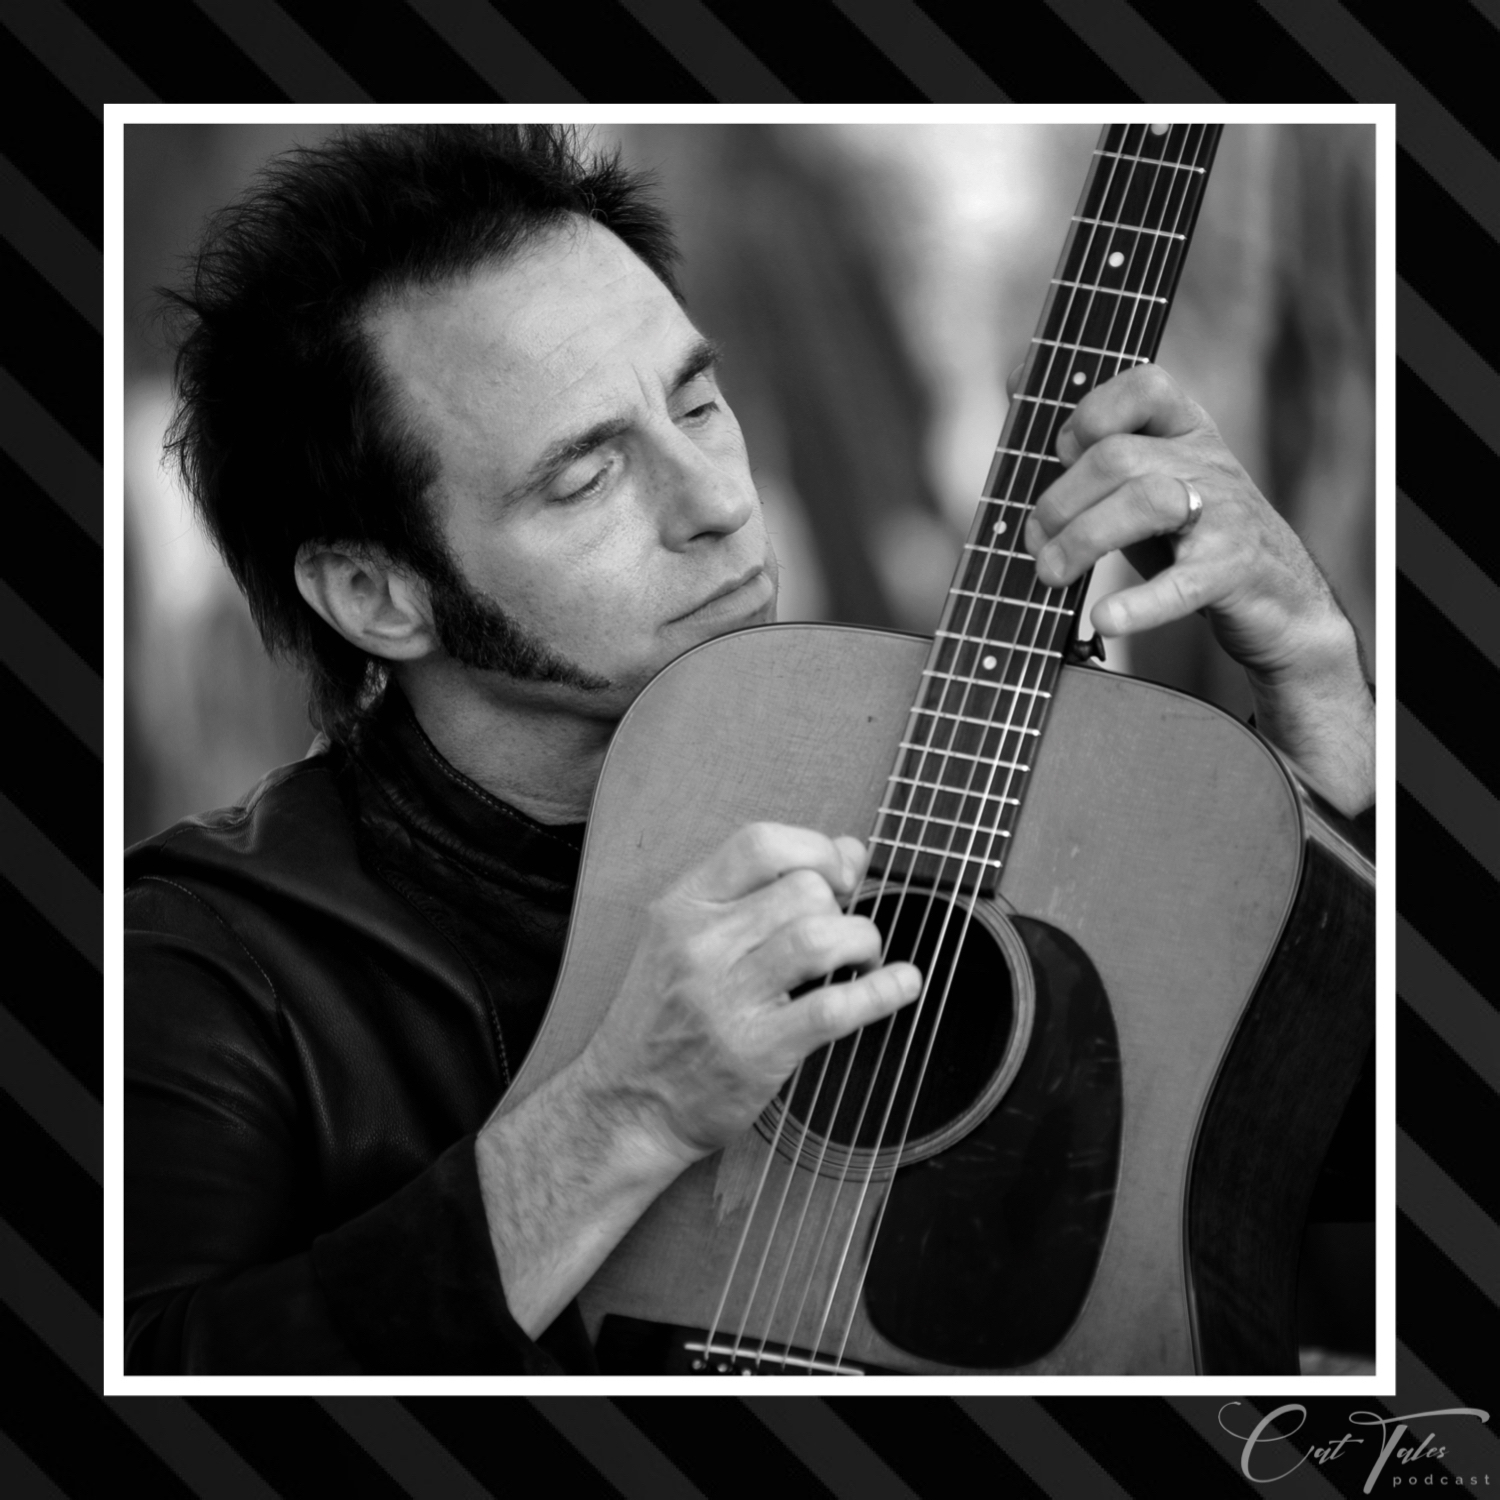 BC8: The one with Nils Lofgren